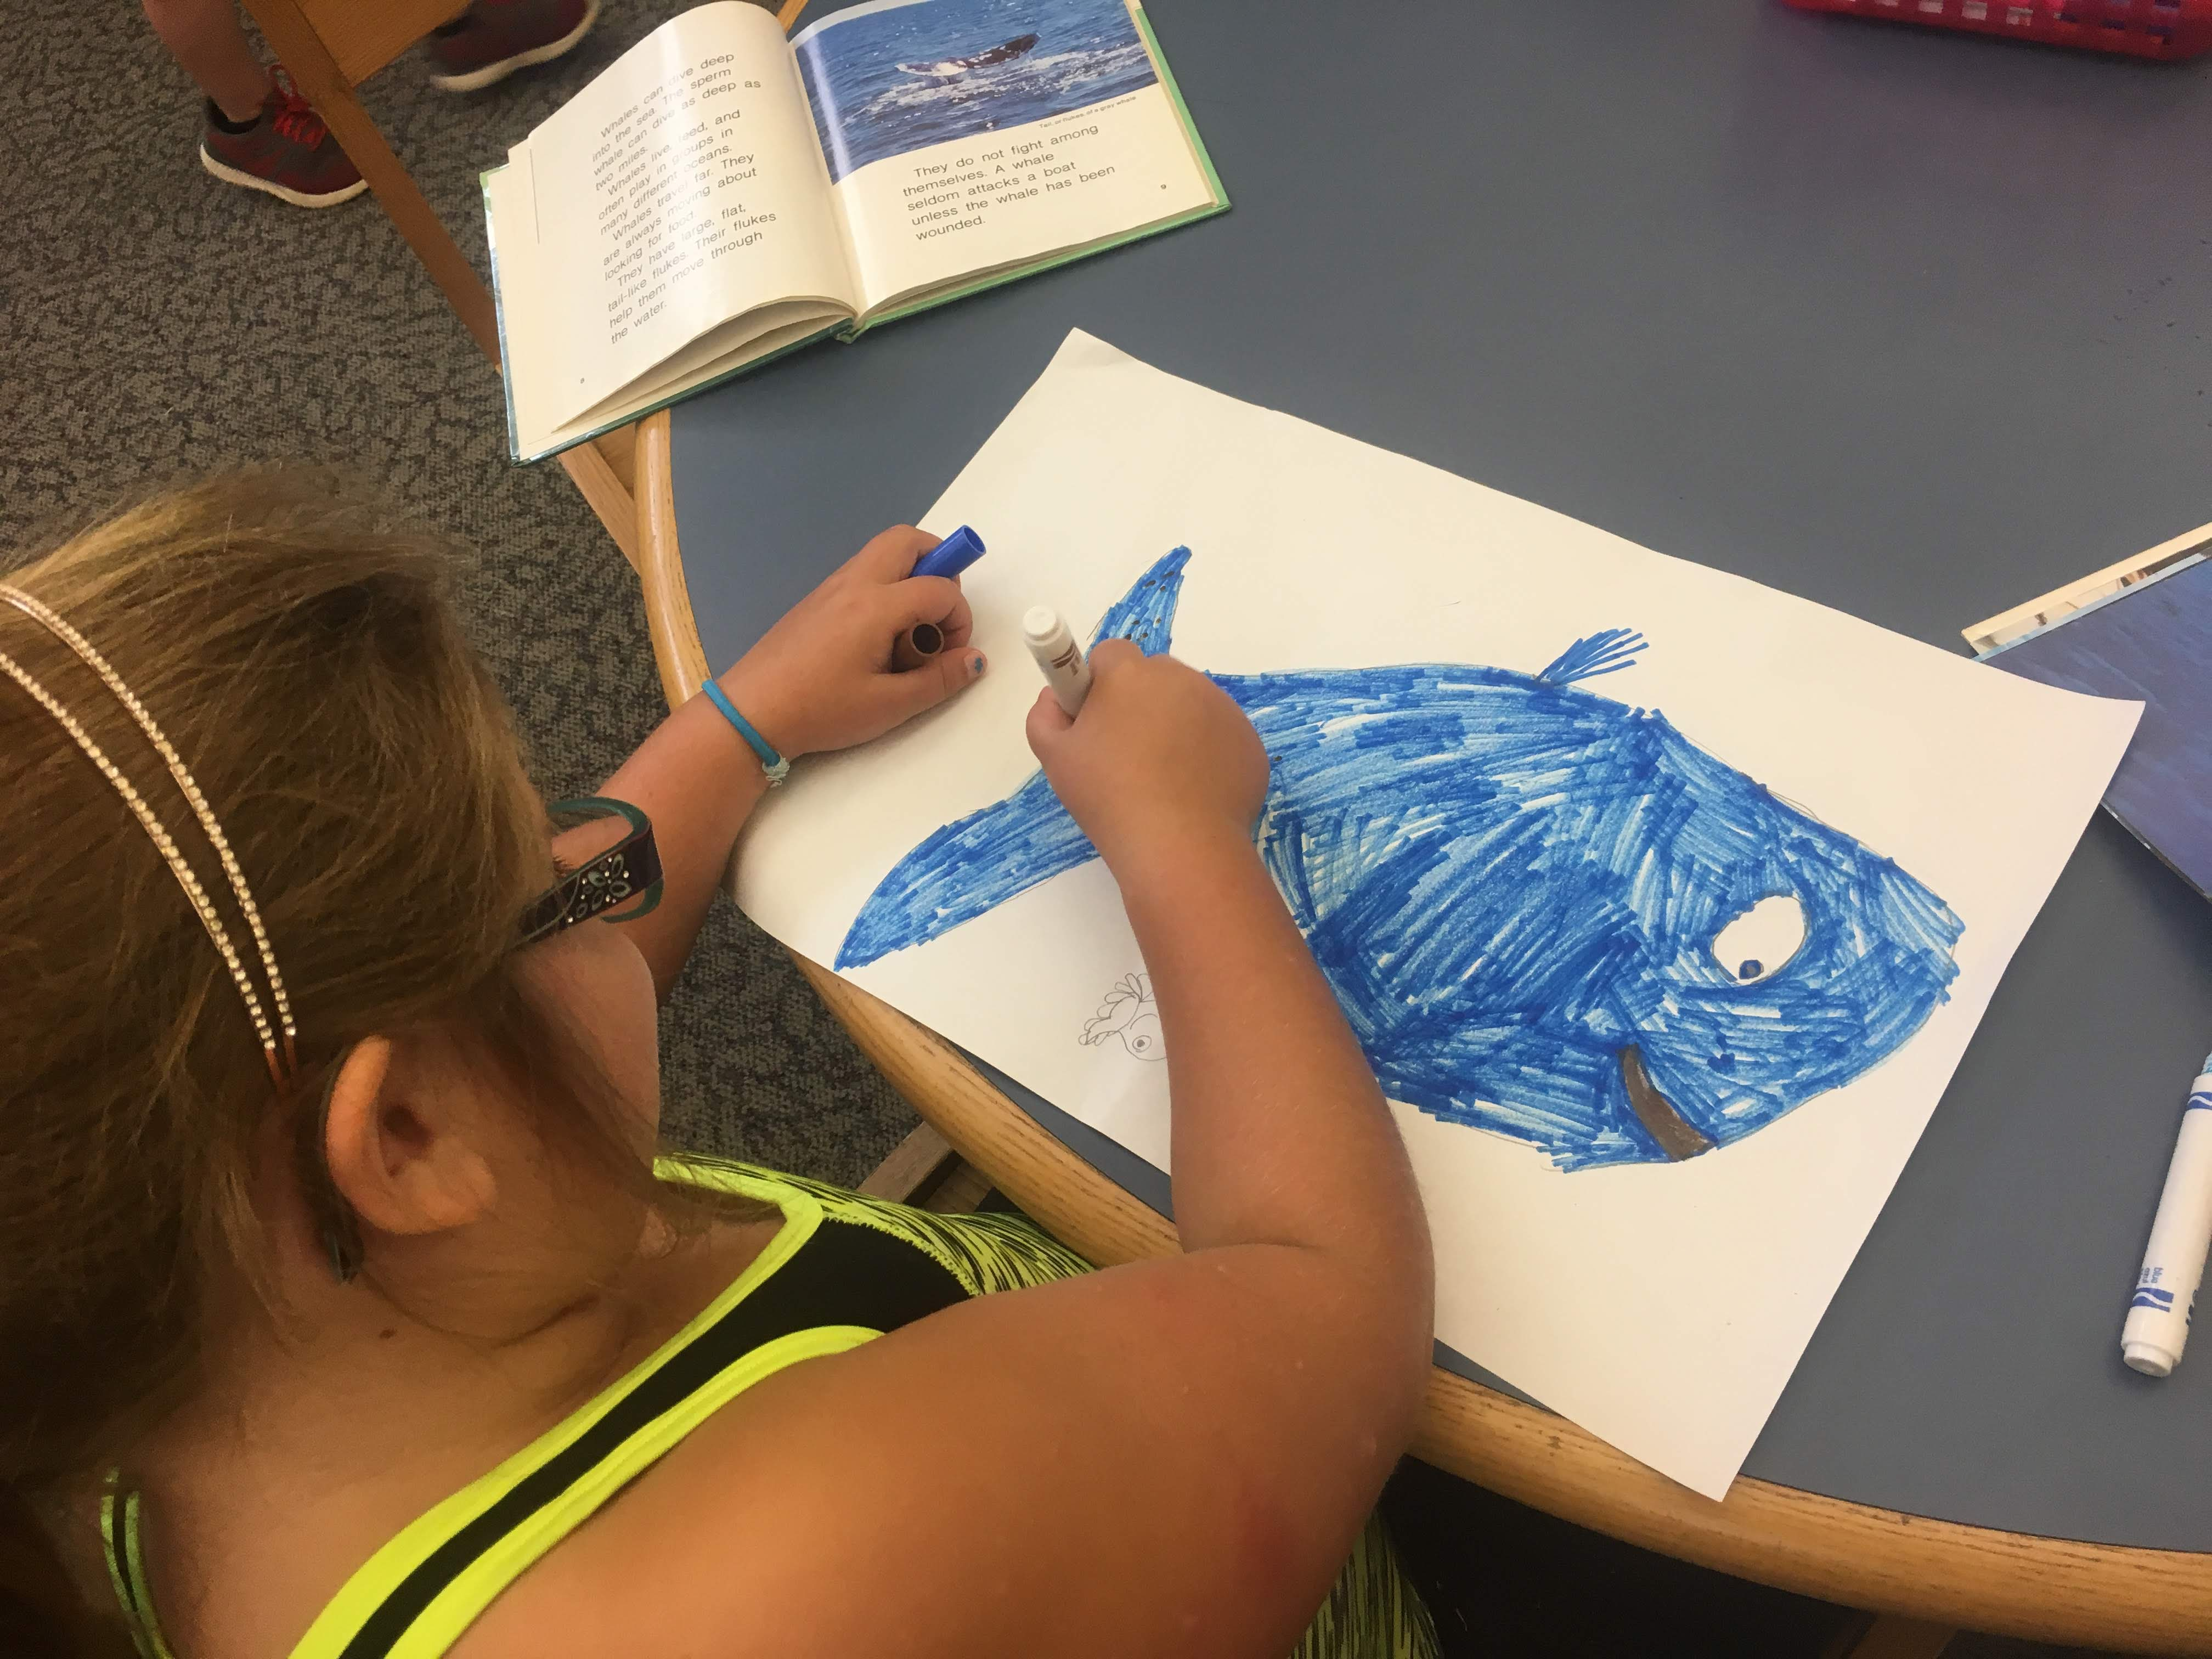 Student preparing her artwork during a fossil visit